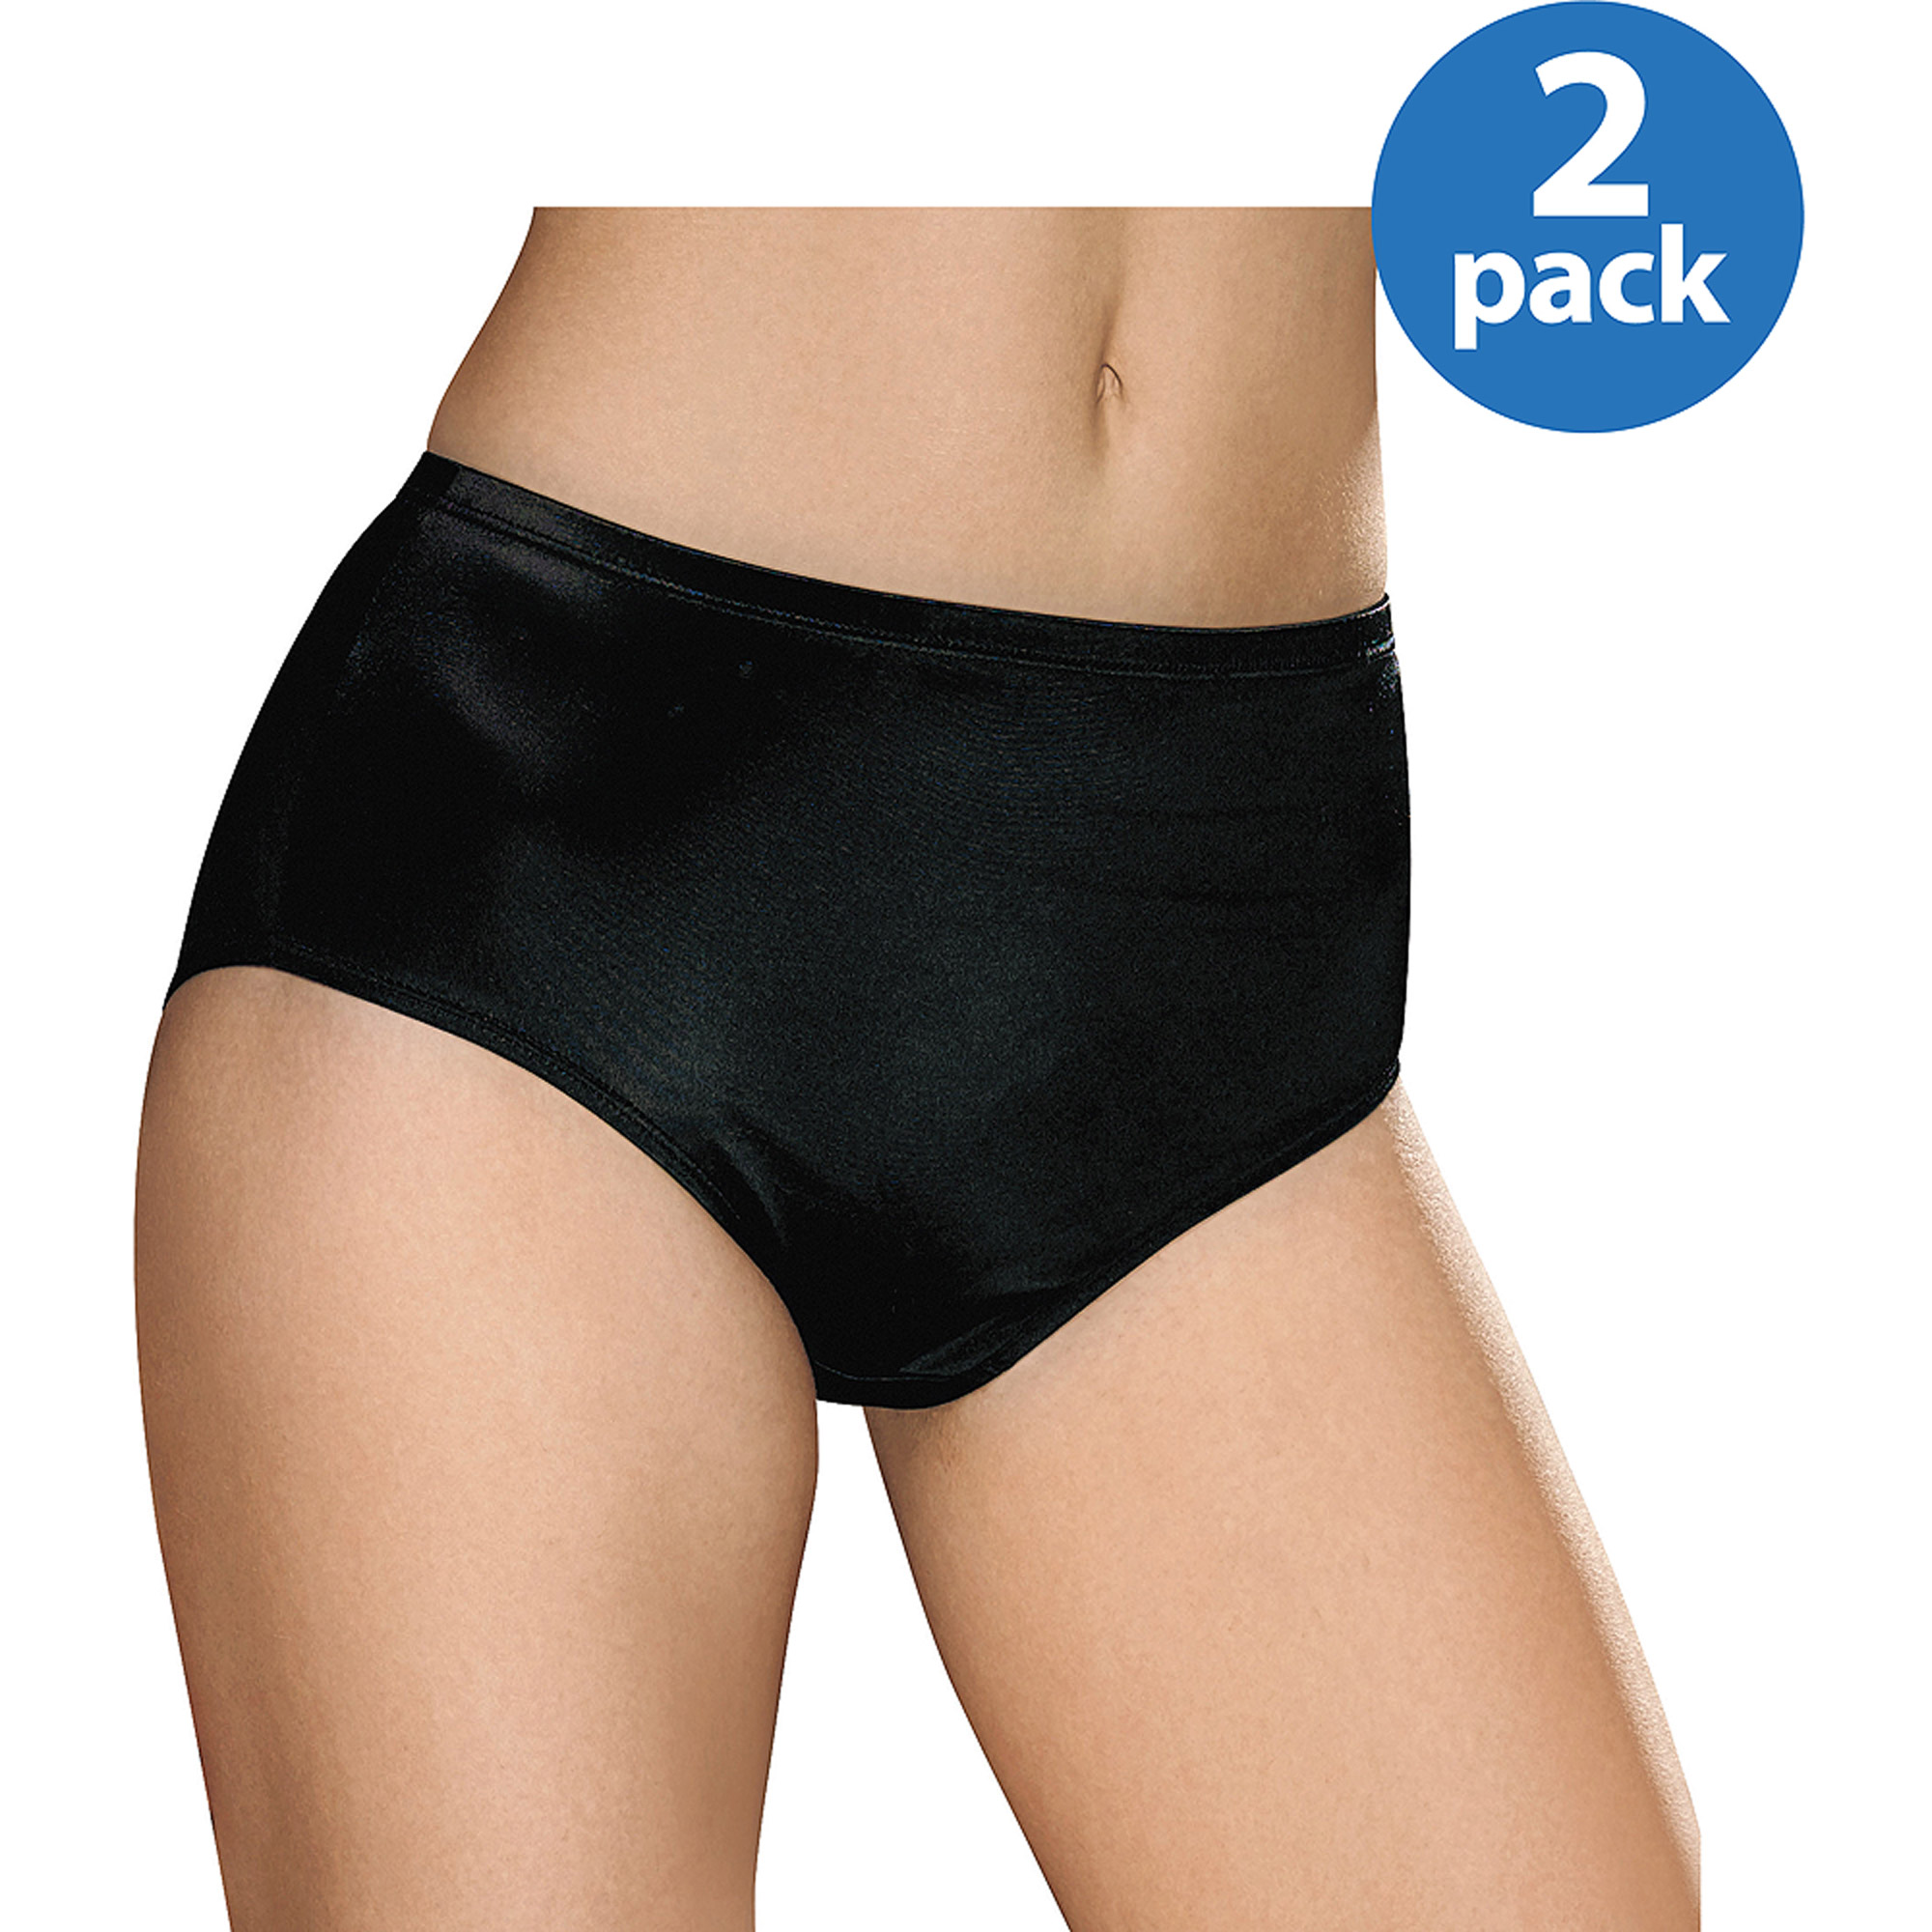 Hanes Women's Specialty Satin Stretch Brief 2 Pack